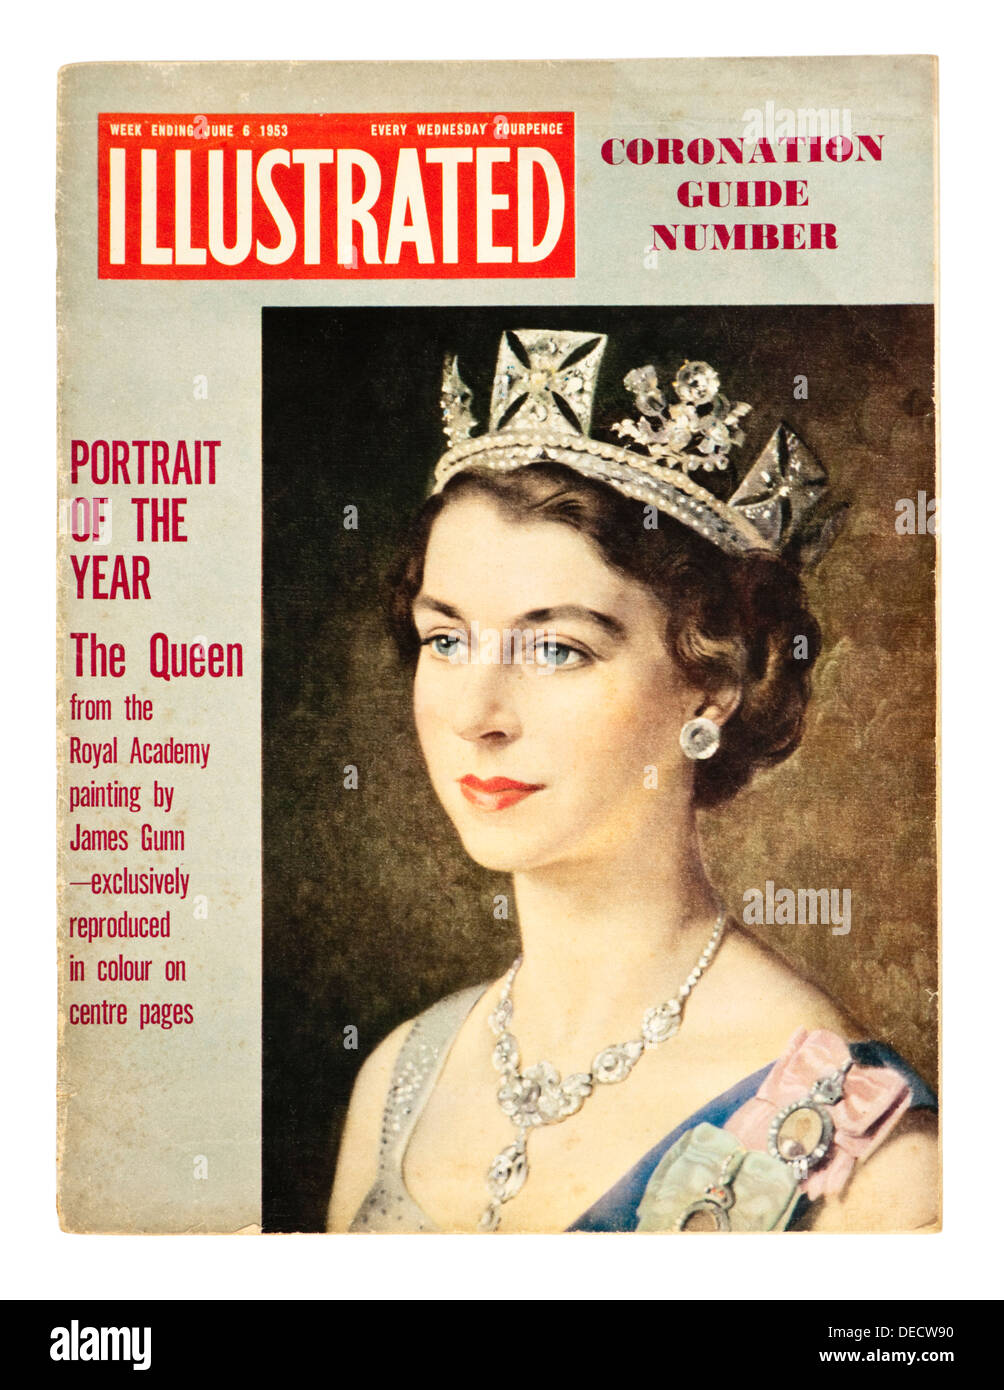 6th June 1953 Special Souvenir Edition of 'Illustrated' magazine to celebrate the Coronation of Queen Elizabeth II - Stock Image